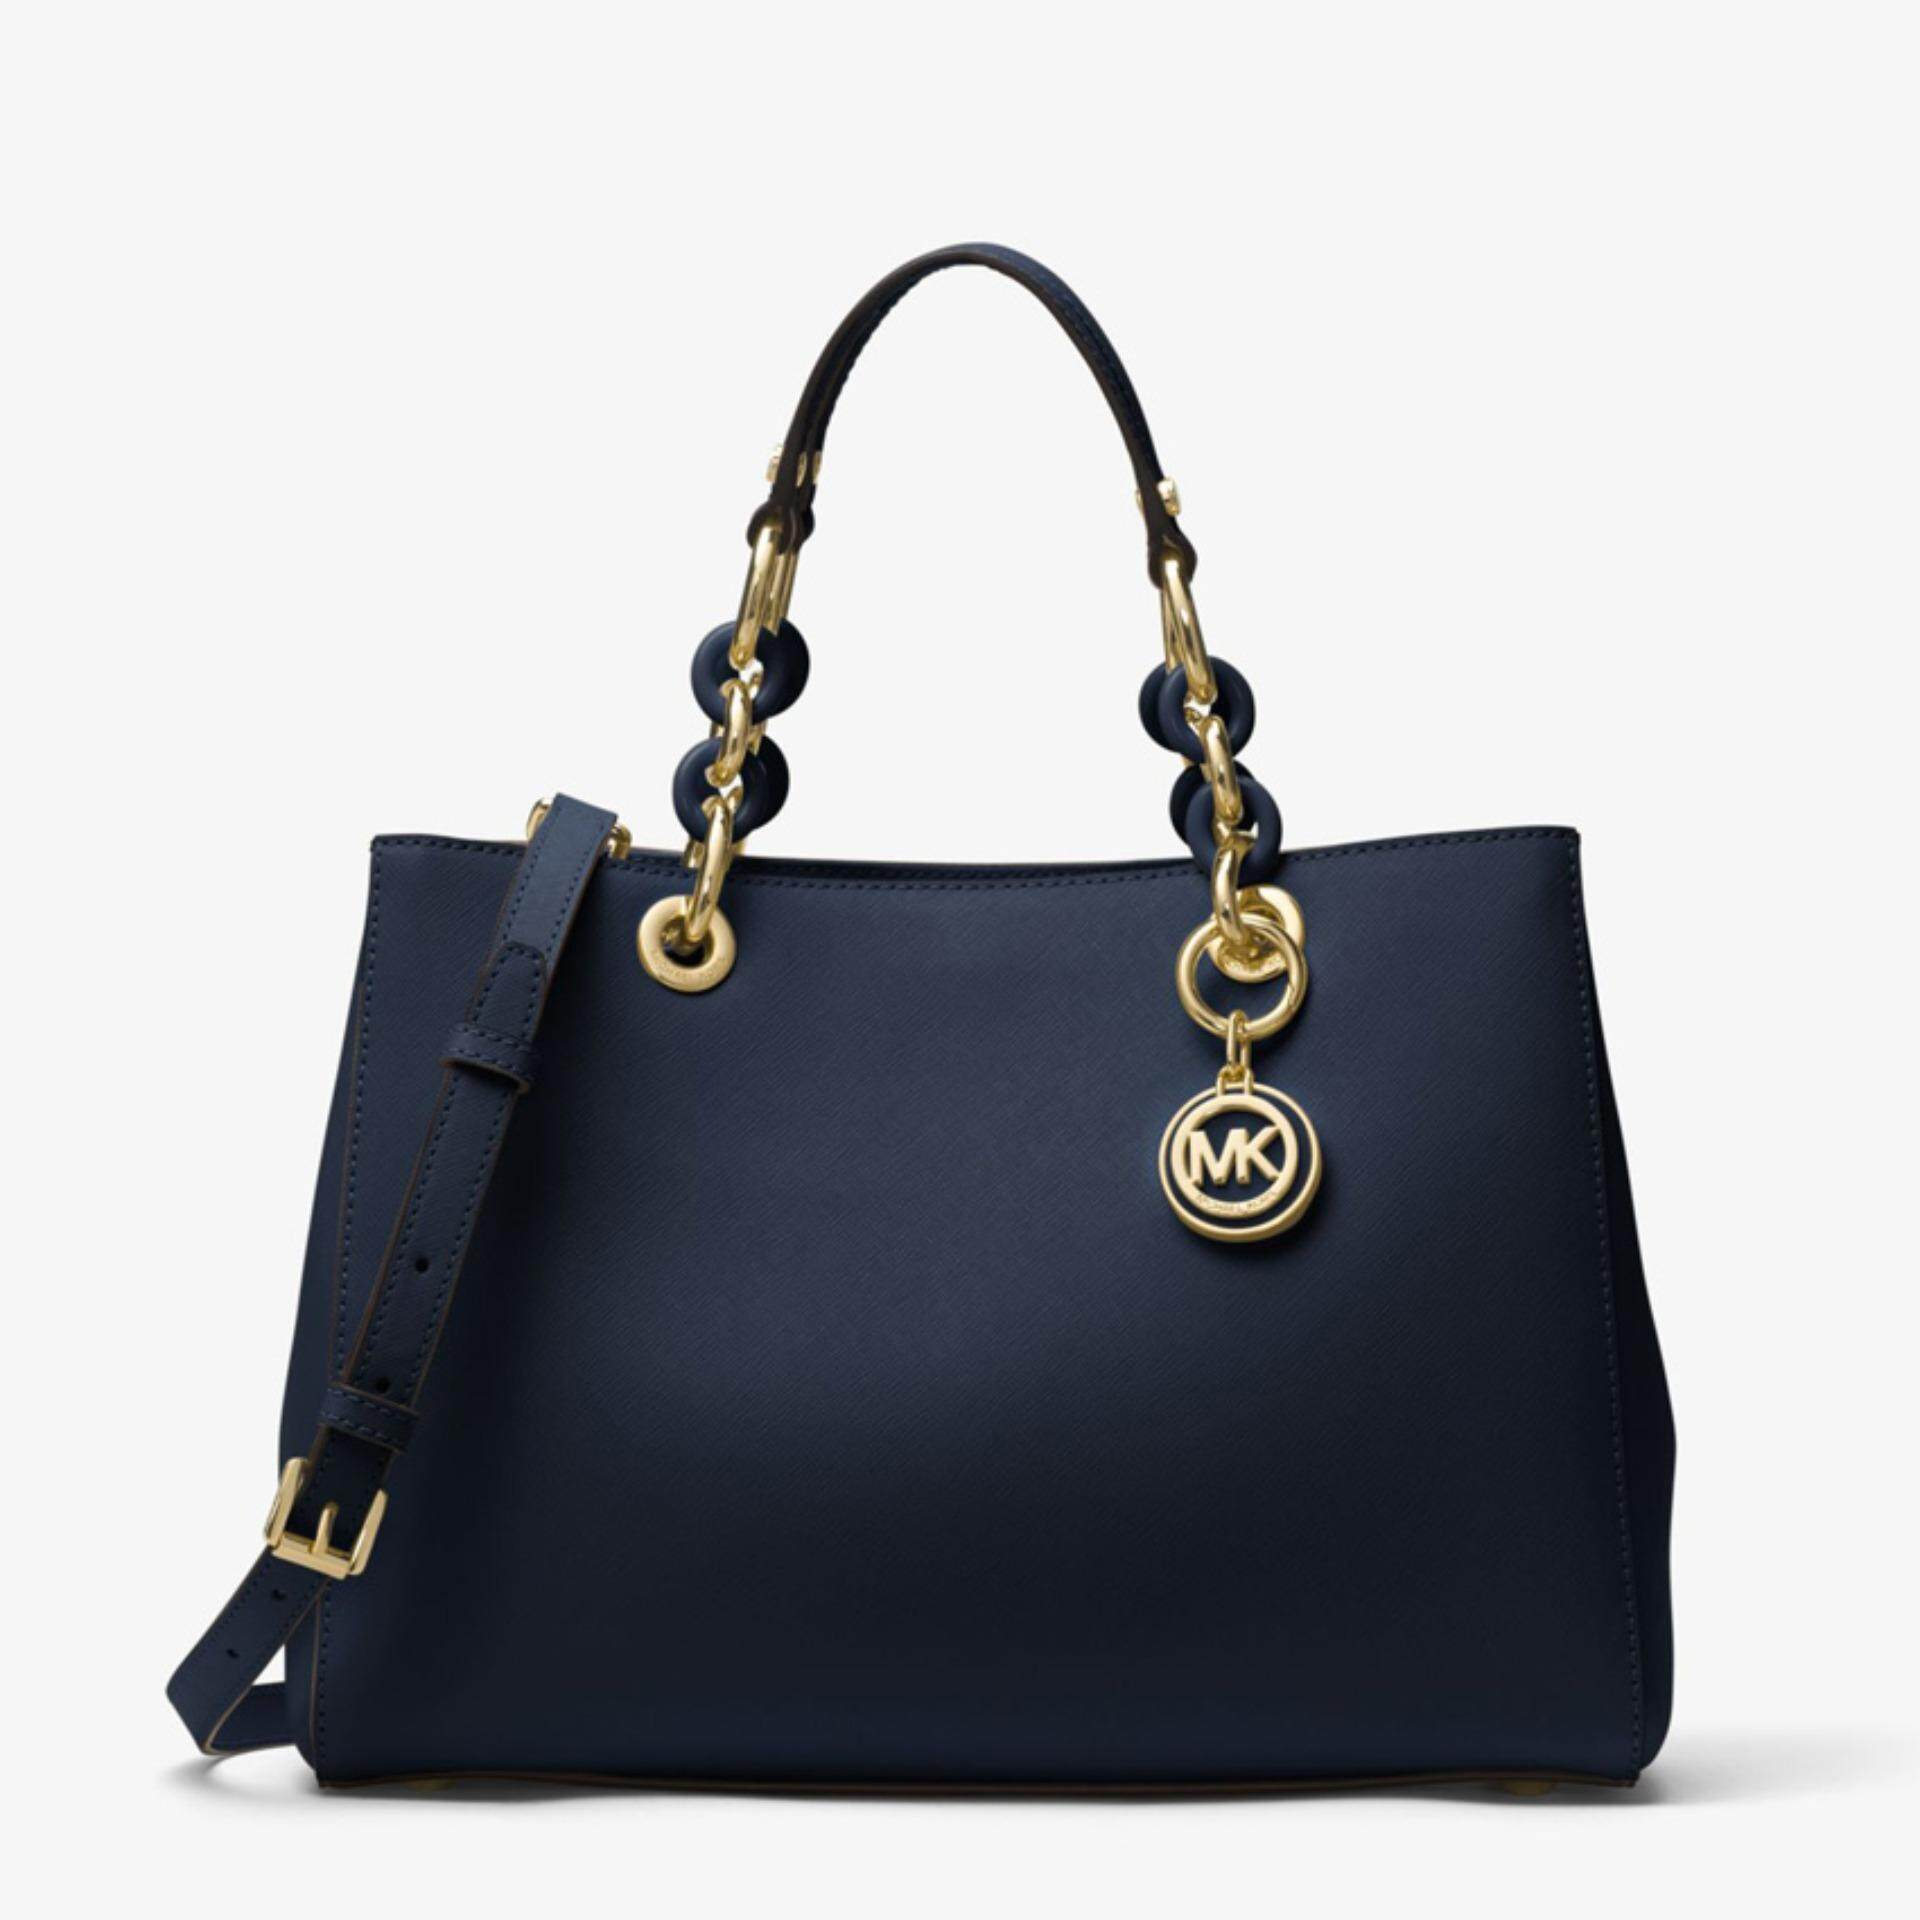 9c440f24b510 Michael Kors Cynthia Medium Saffiano Leather Satchel - Navy Blue